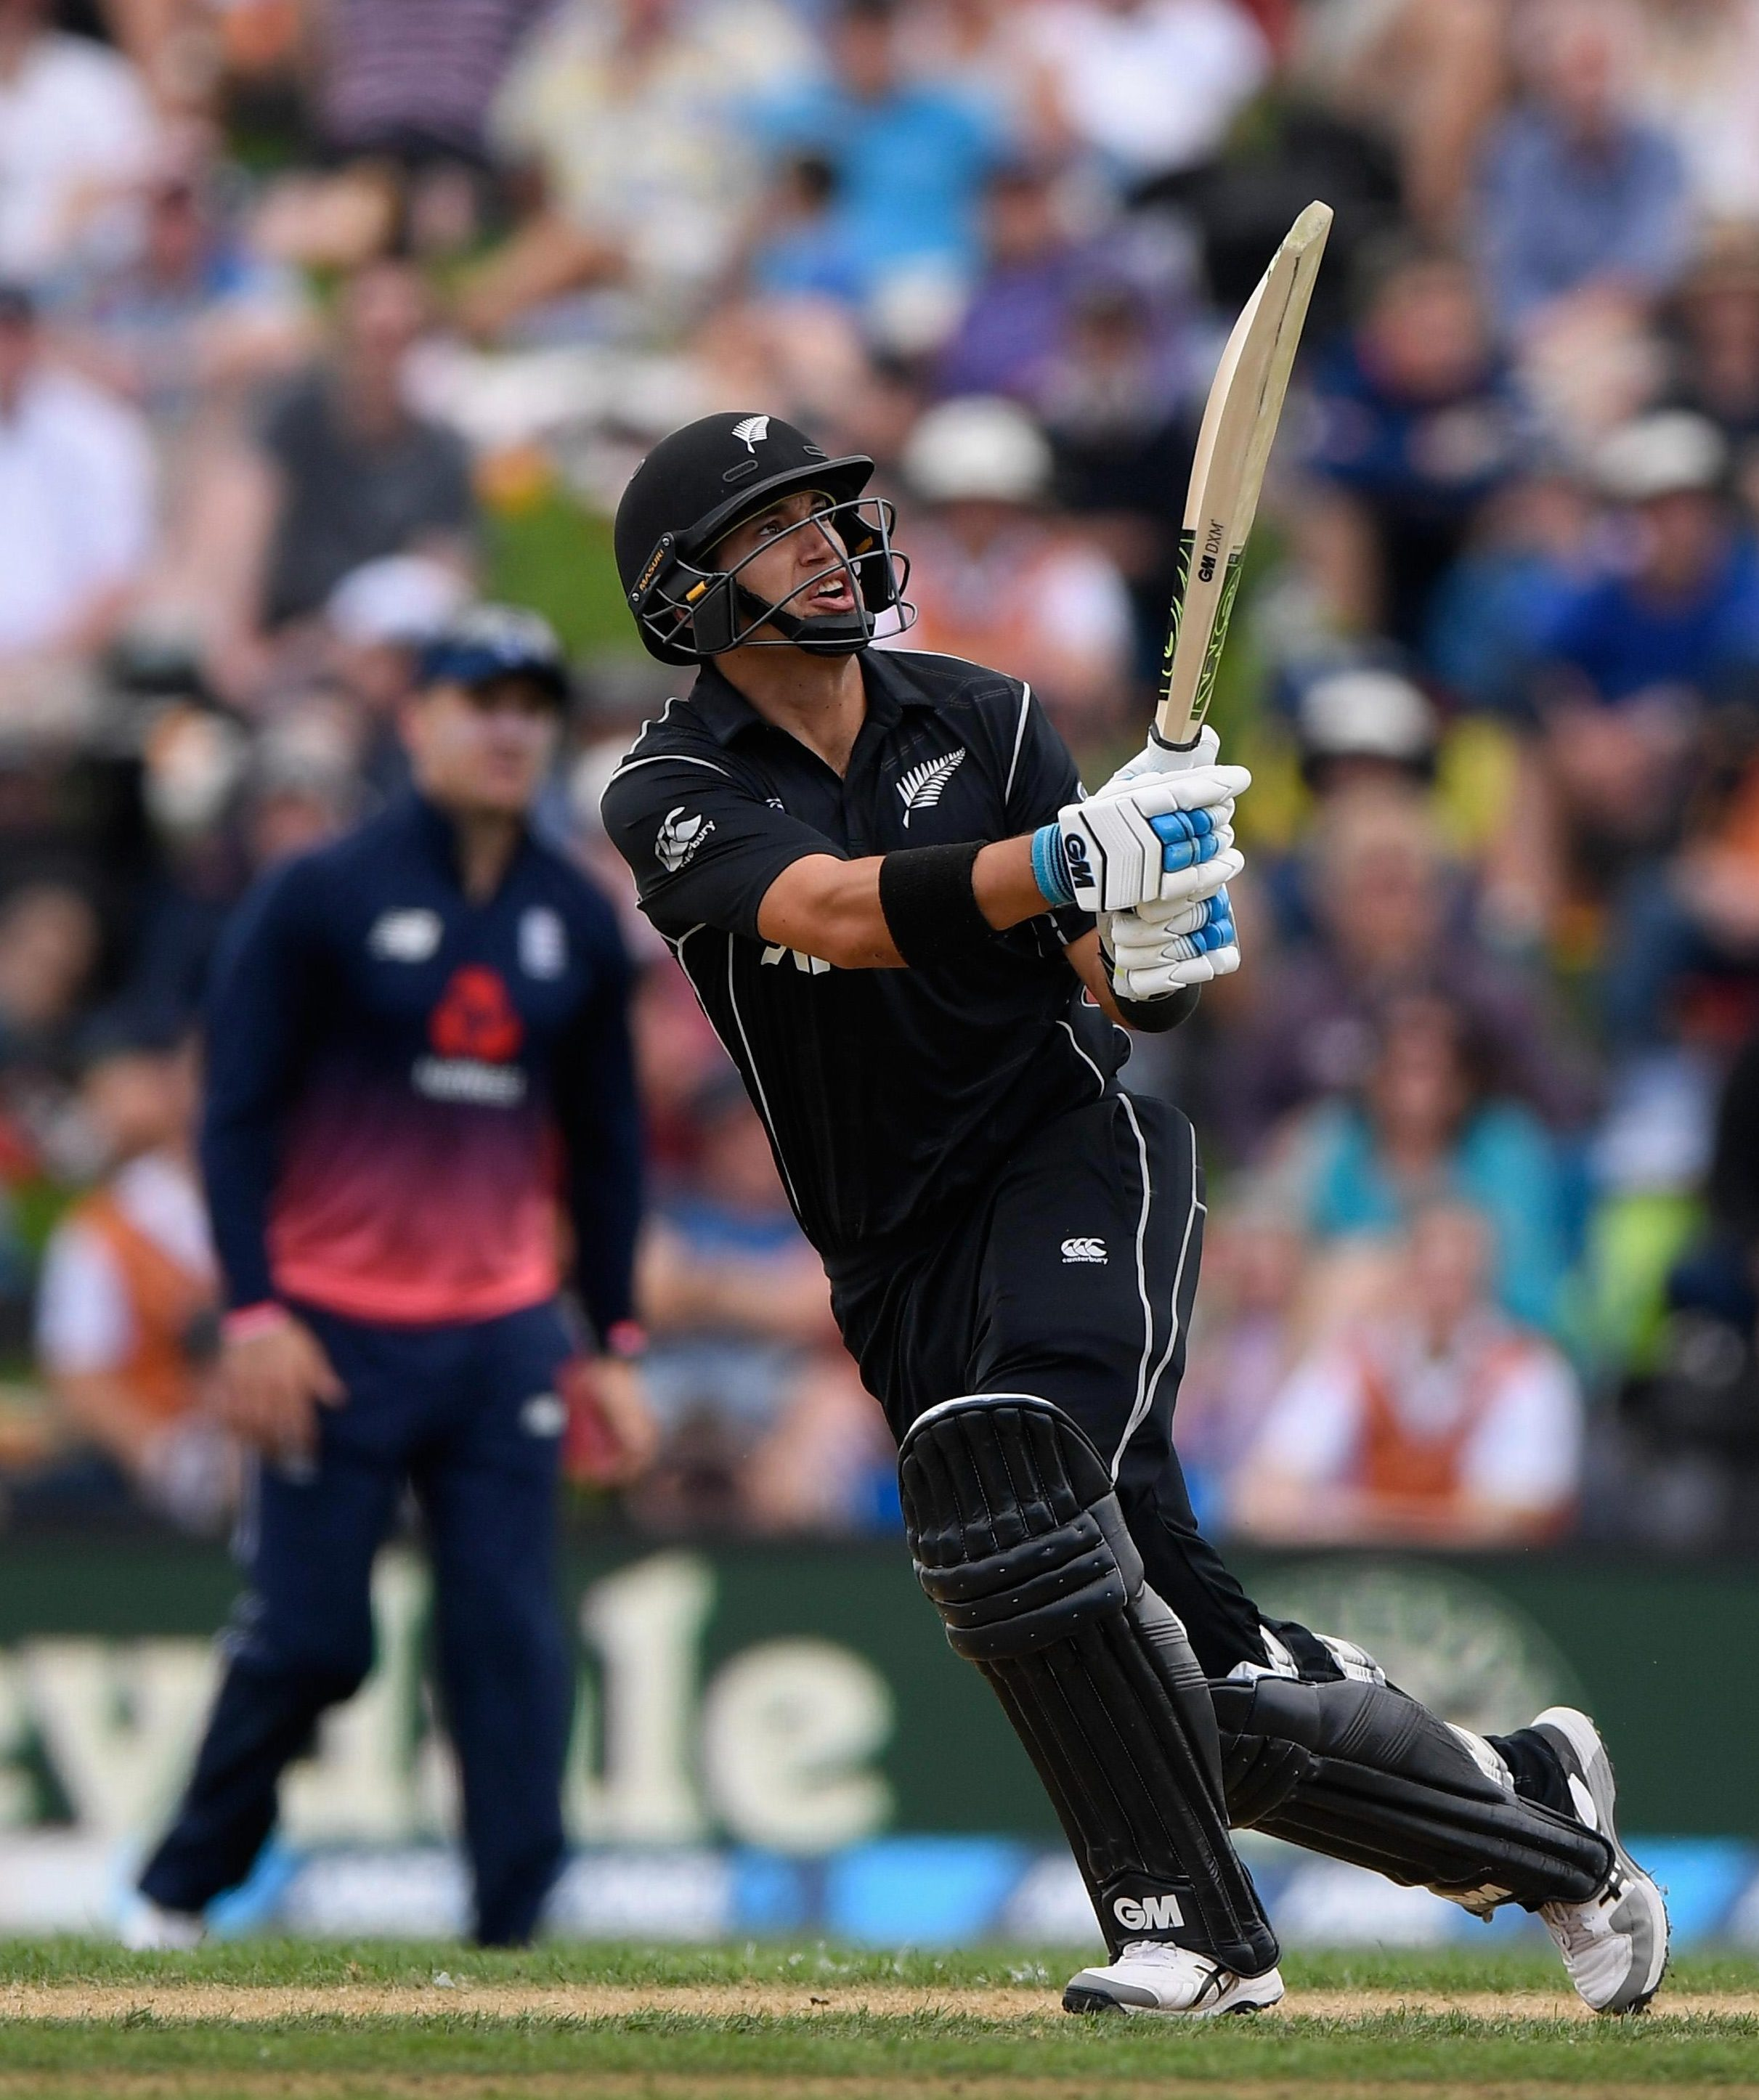 Ross Taylor produced a heroic innings to give New Zealand the win in the fourth Test